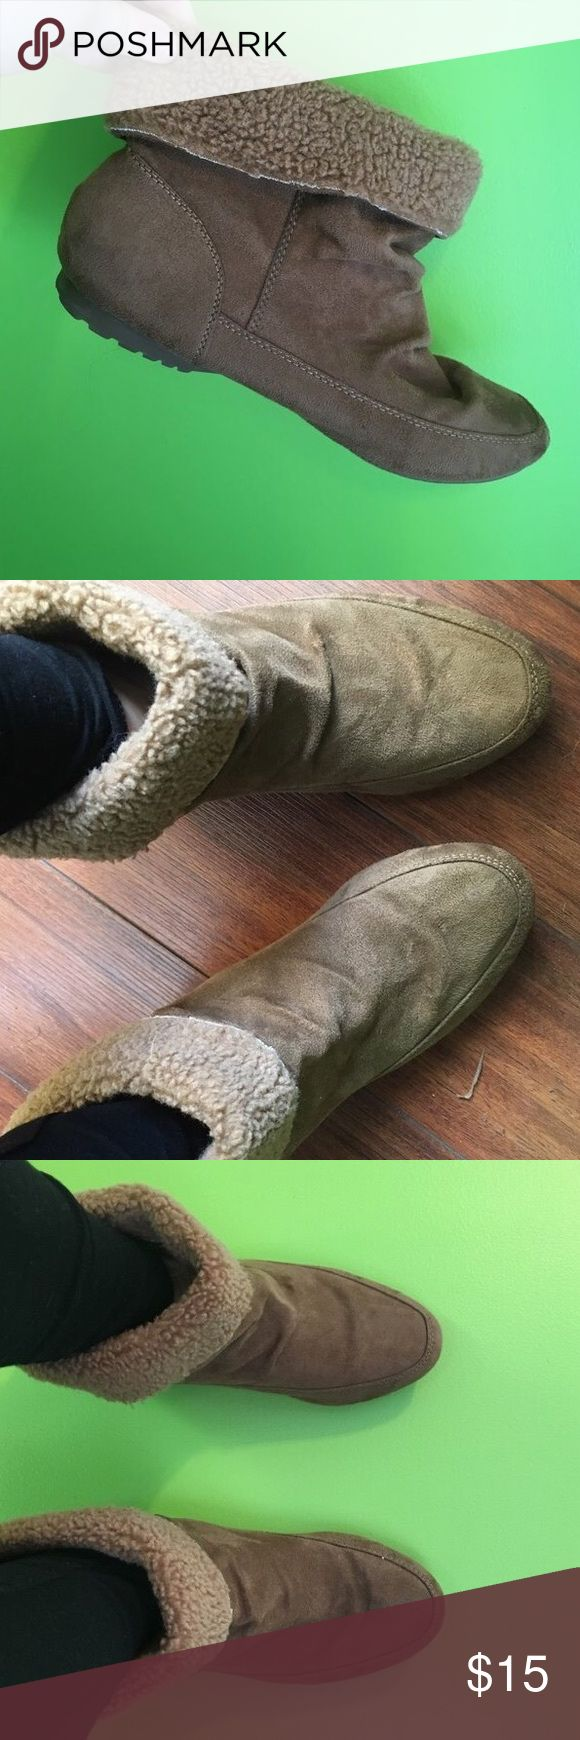 Faux Fur Ankle Boots Faux Fur ankle booties, great condition, barley worn! Very cute and comfy! Lower East Side Shoes Ankle Boots & Booties